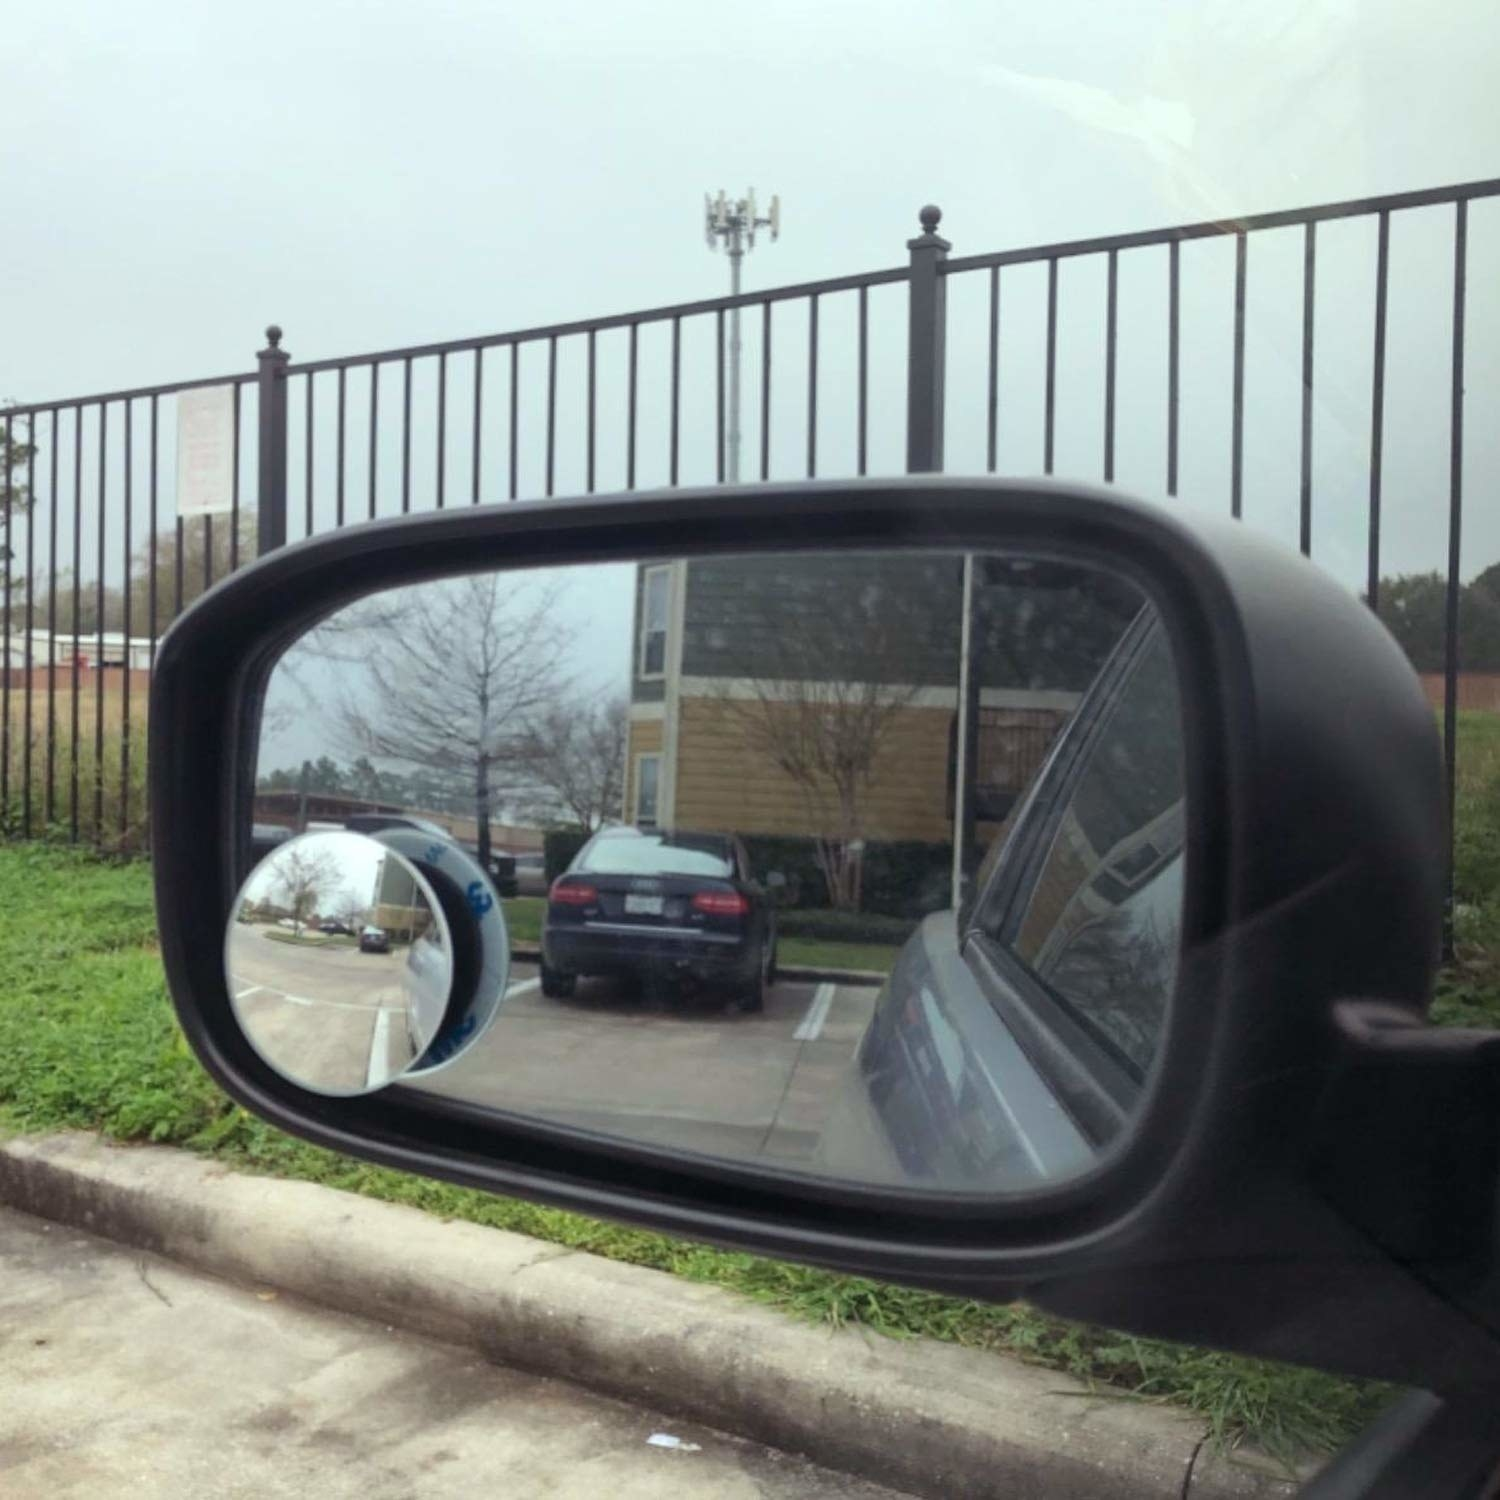 small circular mirror stick to side mirror